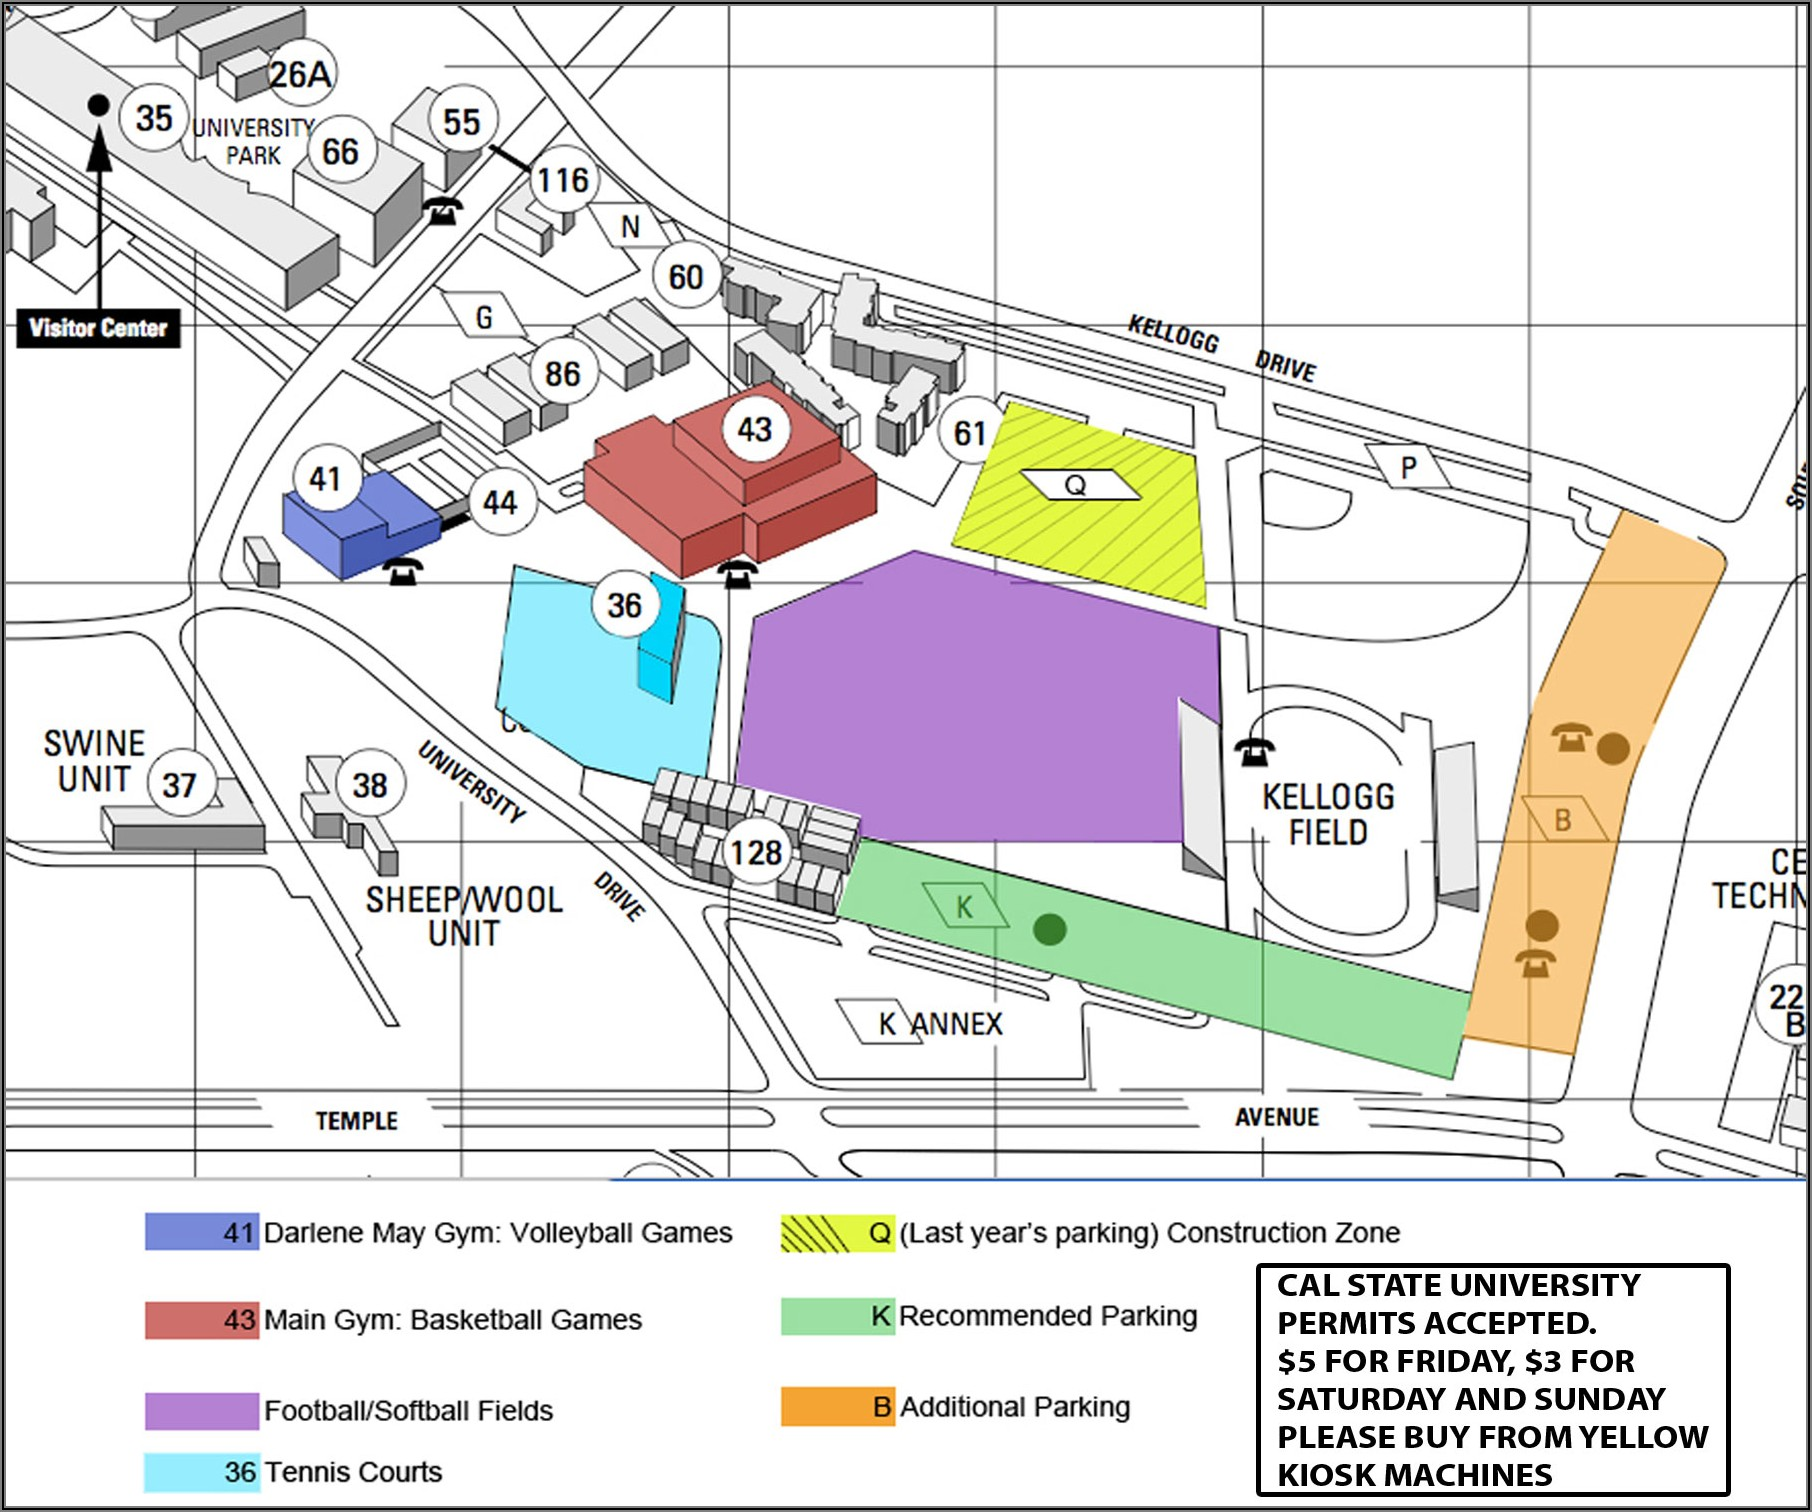 Cal Poly Pomona Campus Map